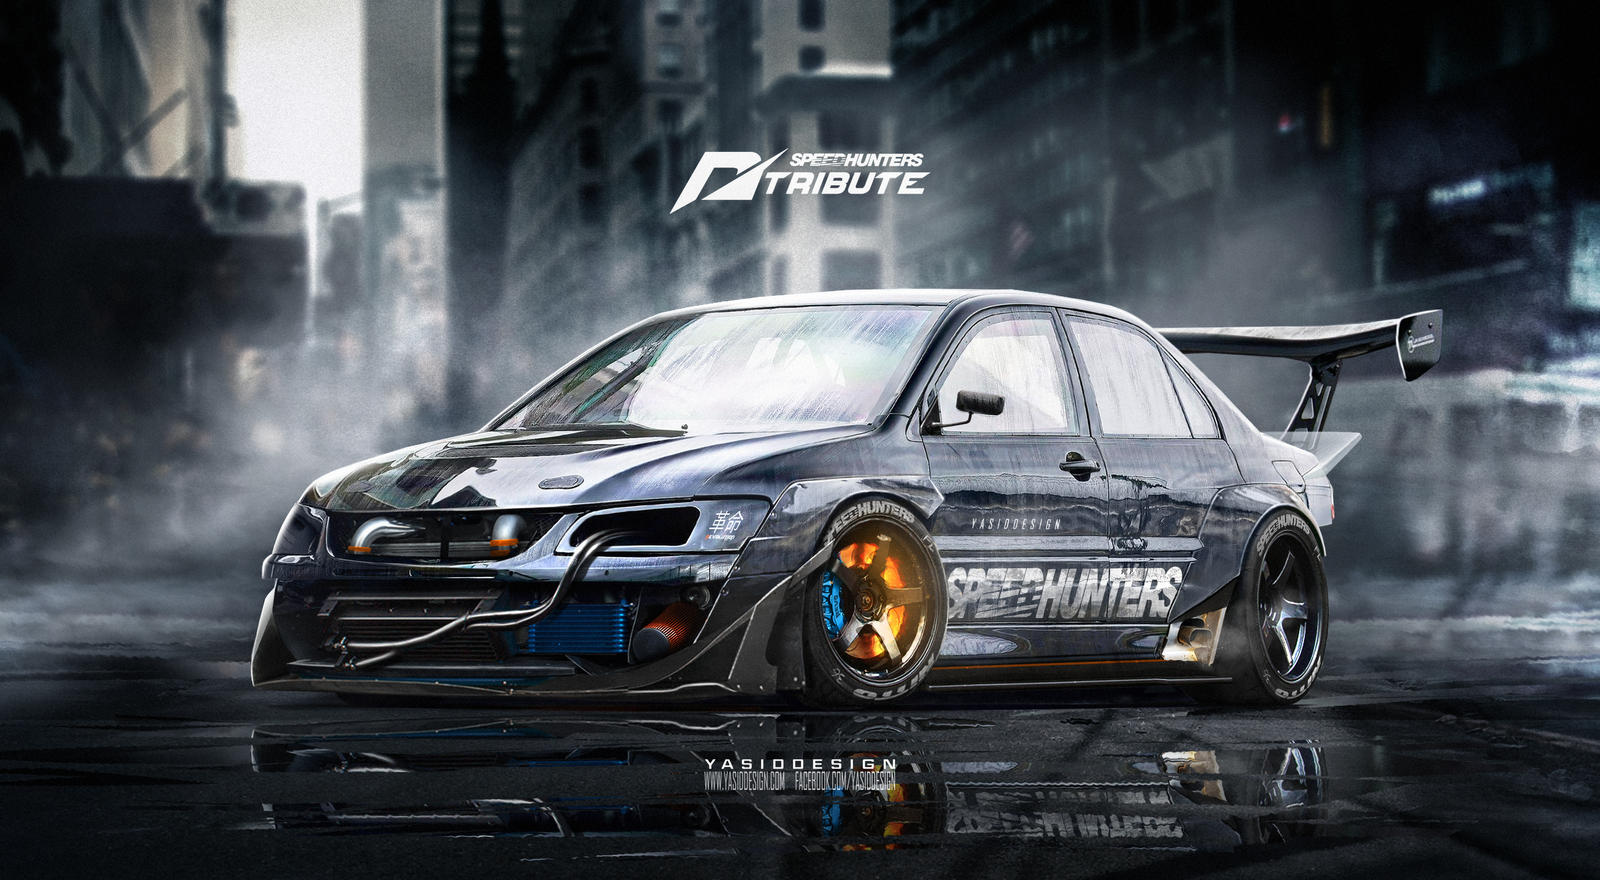 Speedhunters Mitsubishi Lancer EVO 9 _ NFS by yasiddesign on DeviantArt